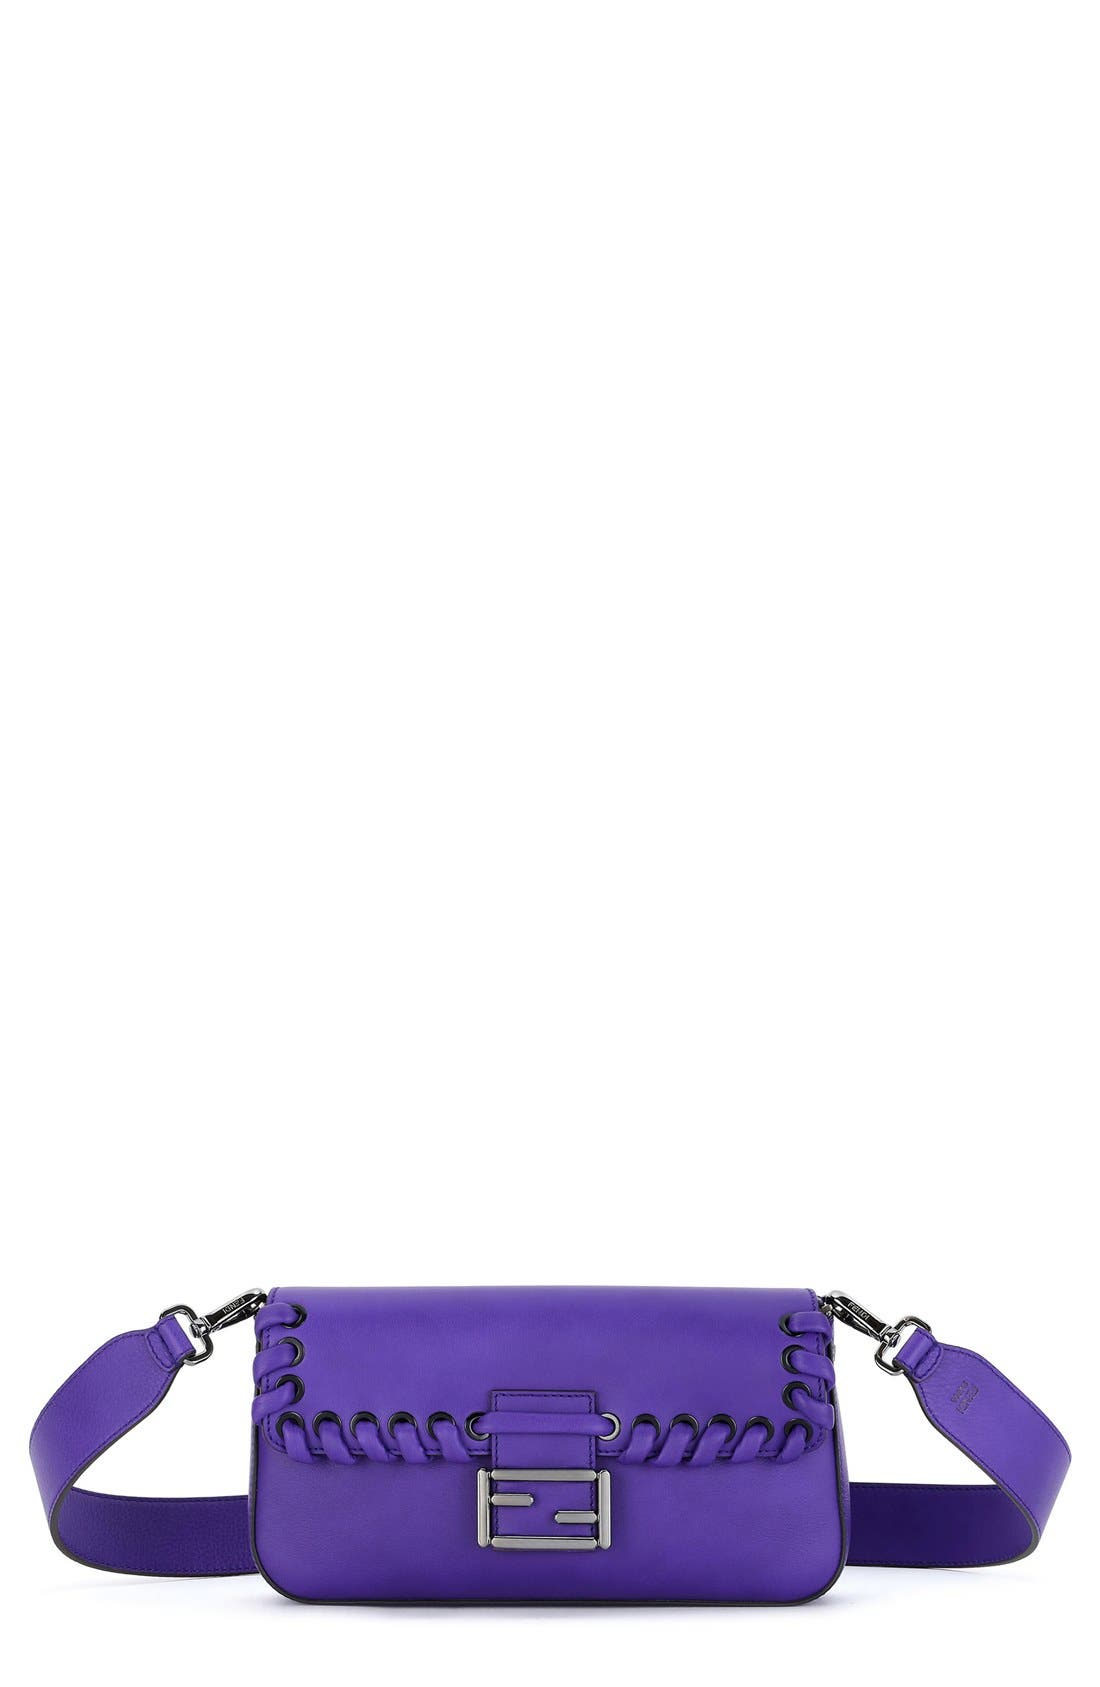 'Dolce' Calfskin Leather Baguette,                             Main thumbnail 1, color,                             Purple Rain/ Ruthenium